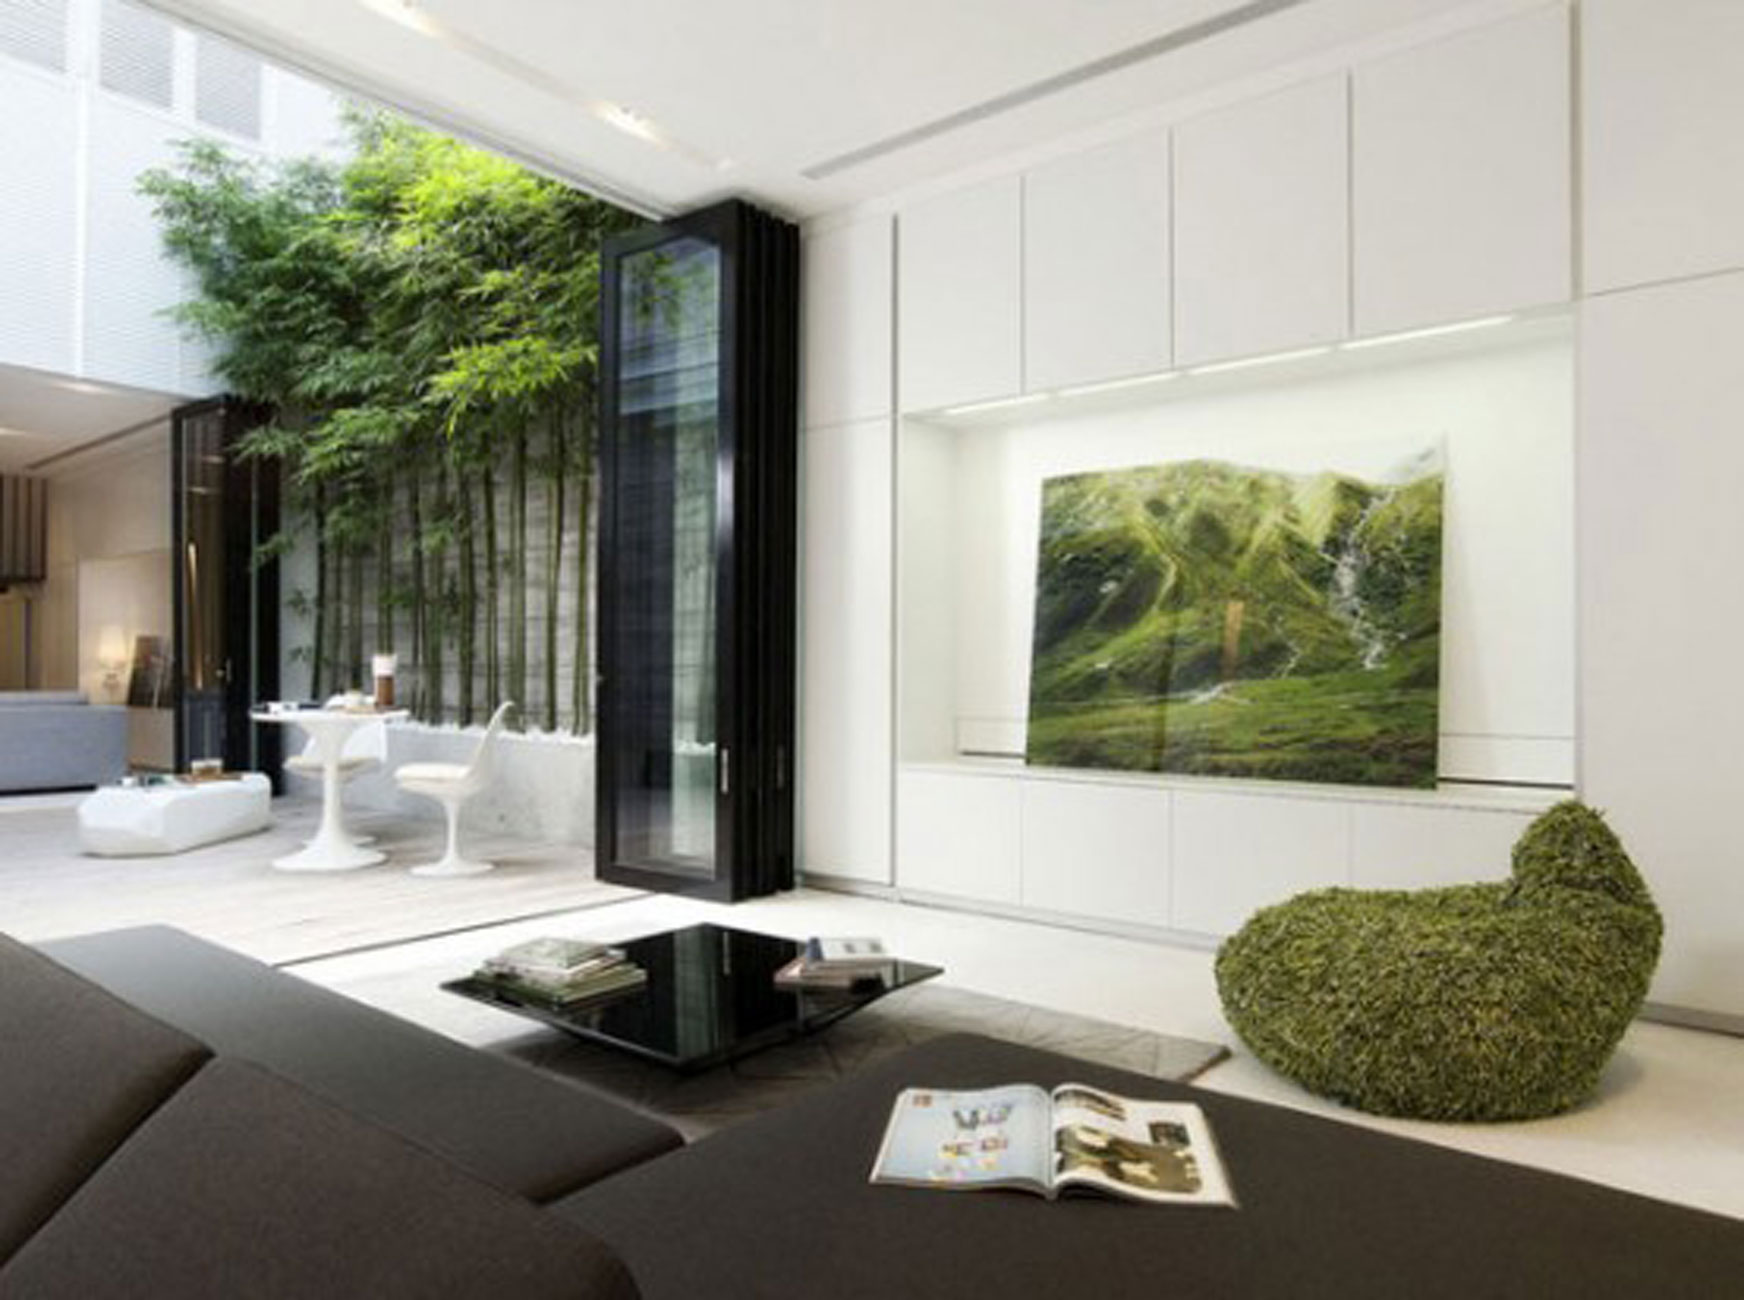 Green Living Area Modern Home Decor Las Vegas (Image 3 of 10)